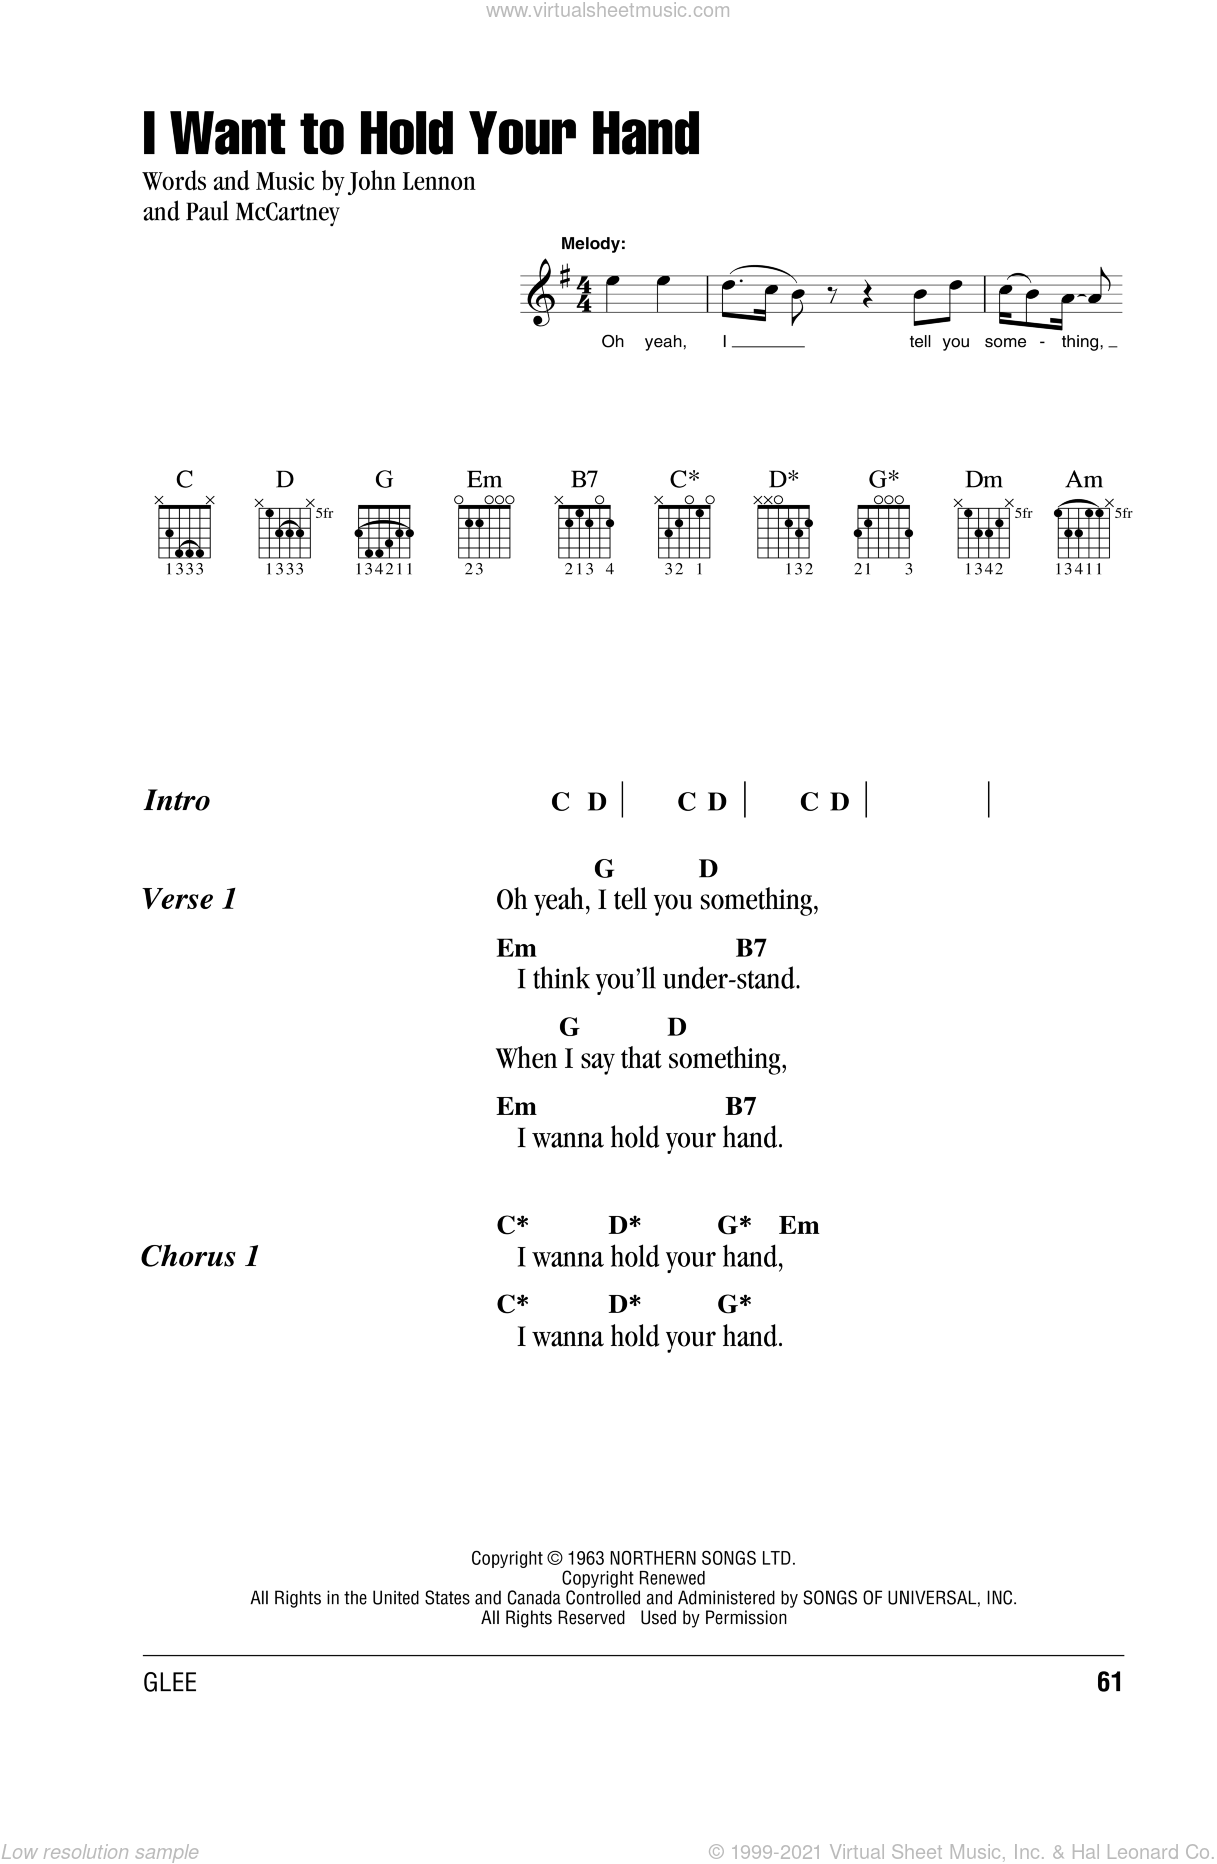 I Want To Hold Your Hand sheet music for guitar (chords) by Paul McCartney